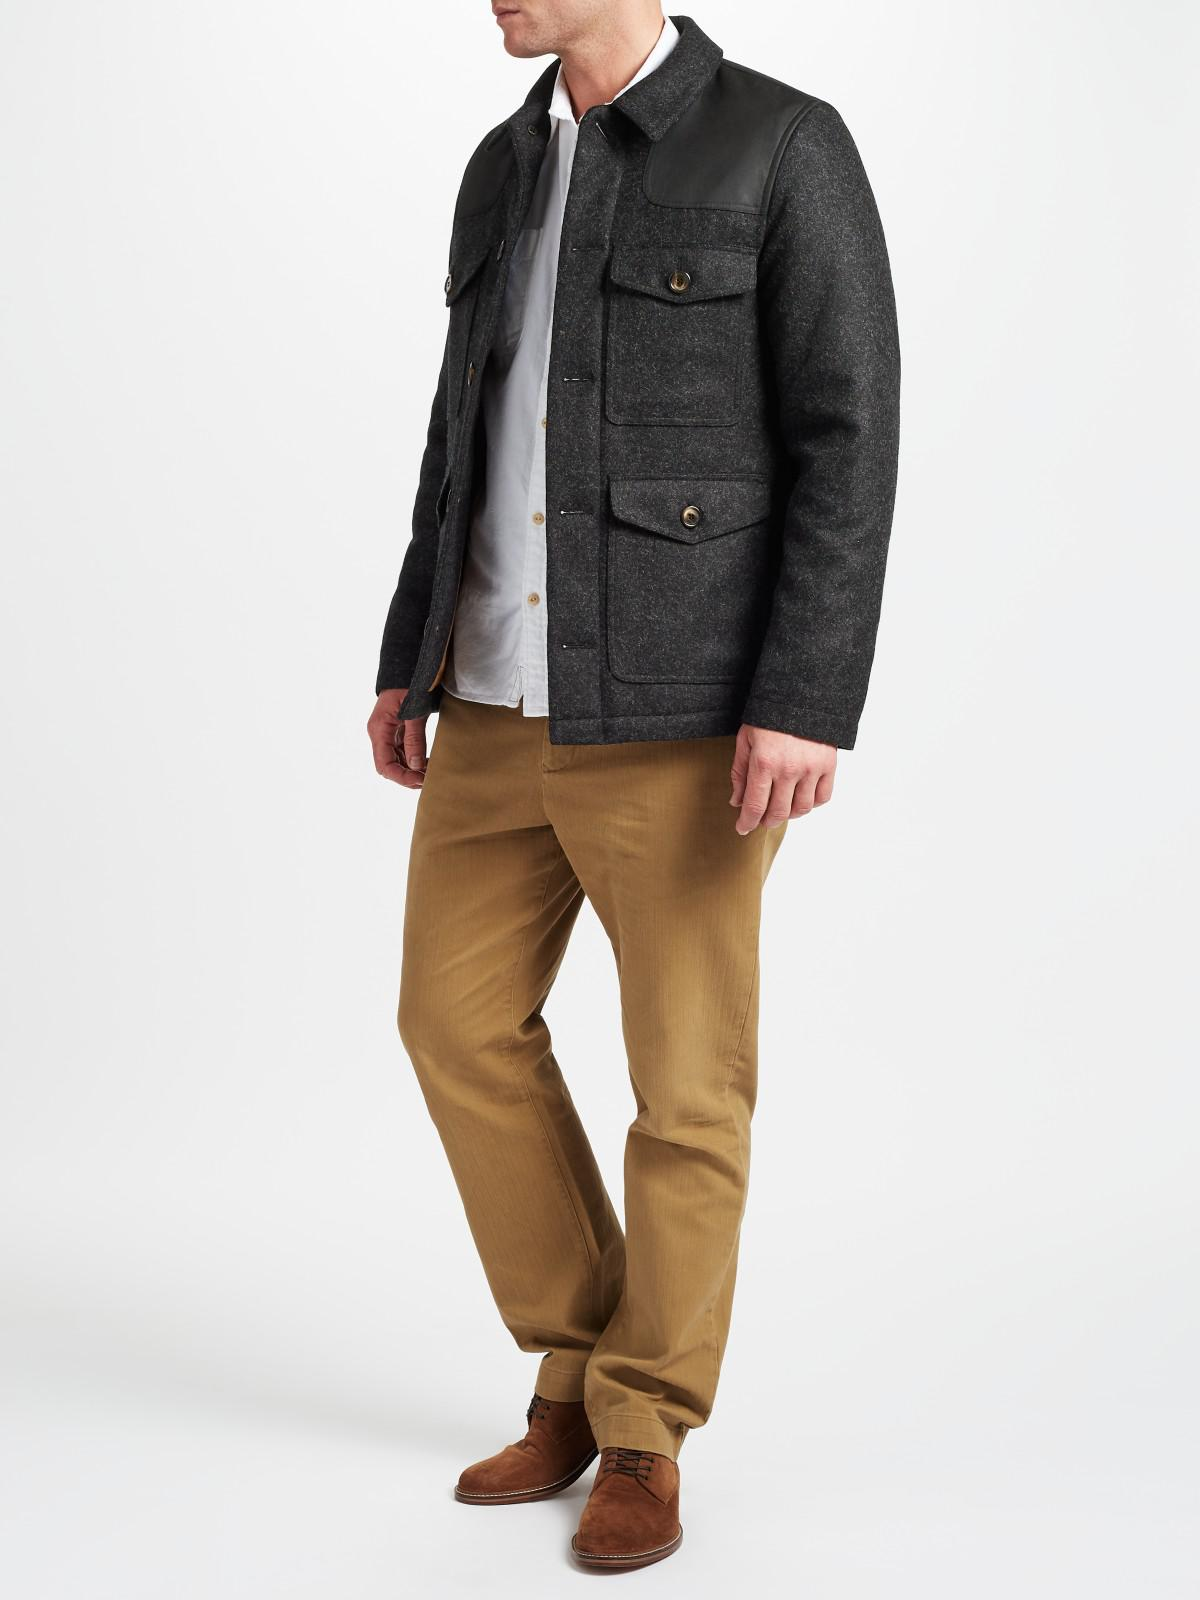 John Lewis Wool Made In Manchester Donkey Jacket in Grey (Grey) for Men